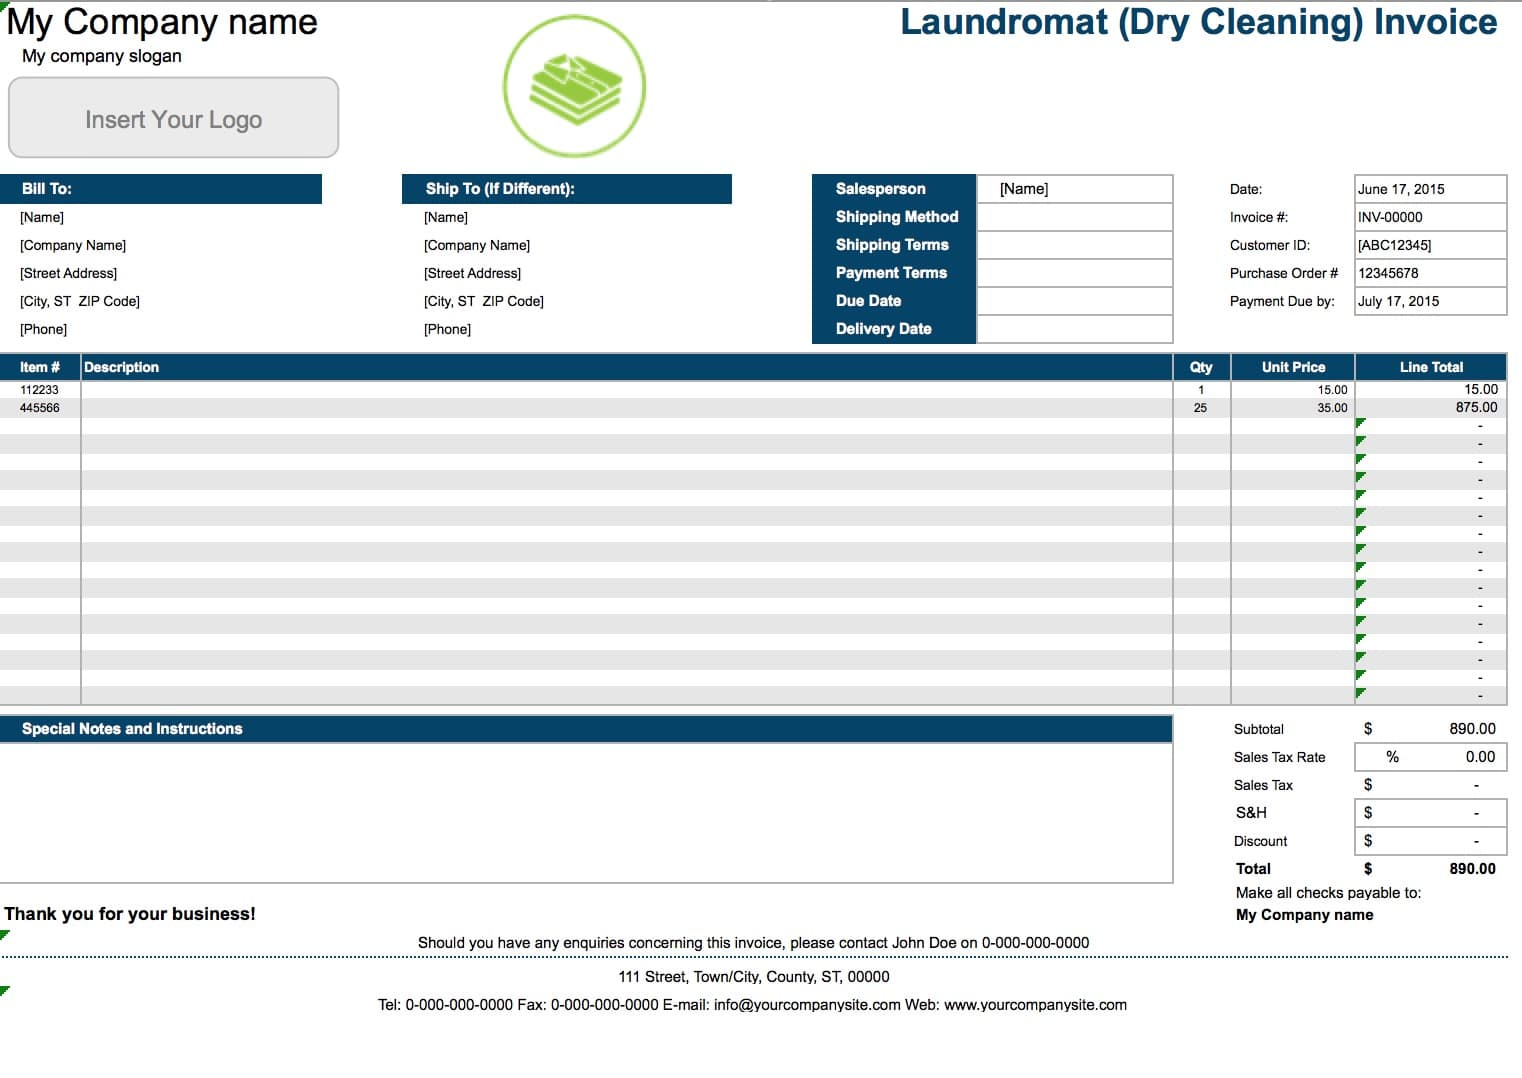 Free Laundromat Dry Cleaning Invoice Template Excel PDF Word - Create an invoice in microsoft word dress stores online